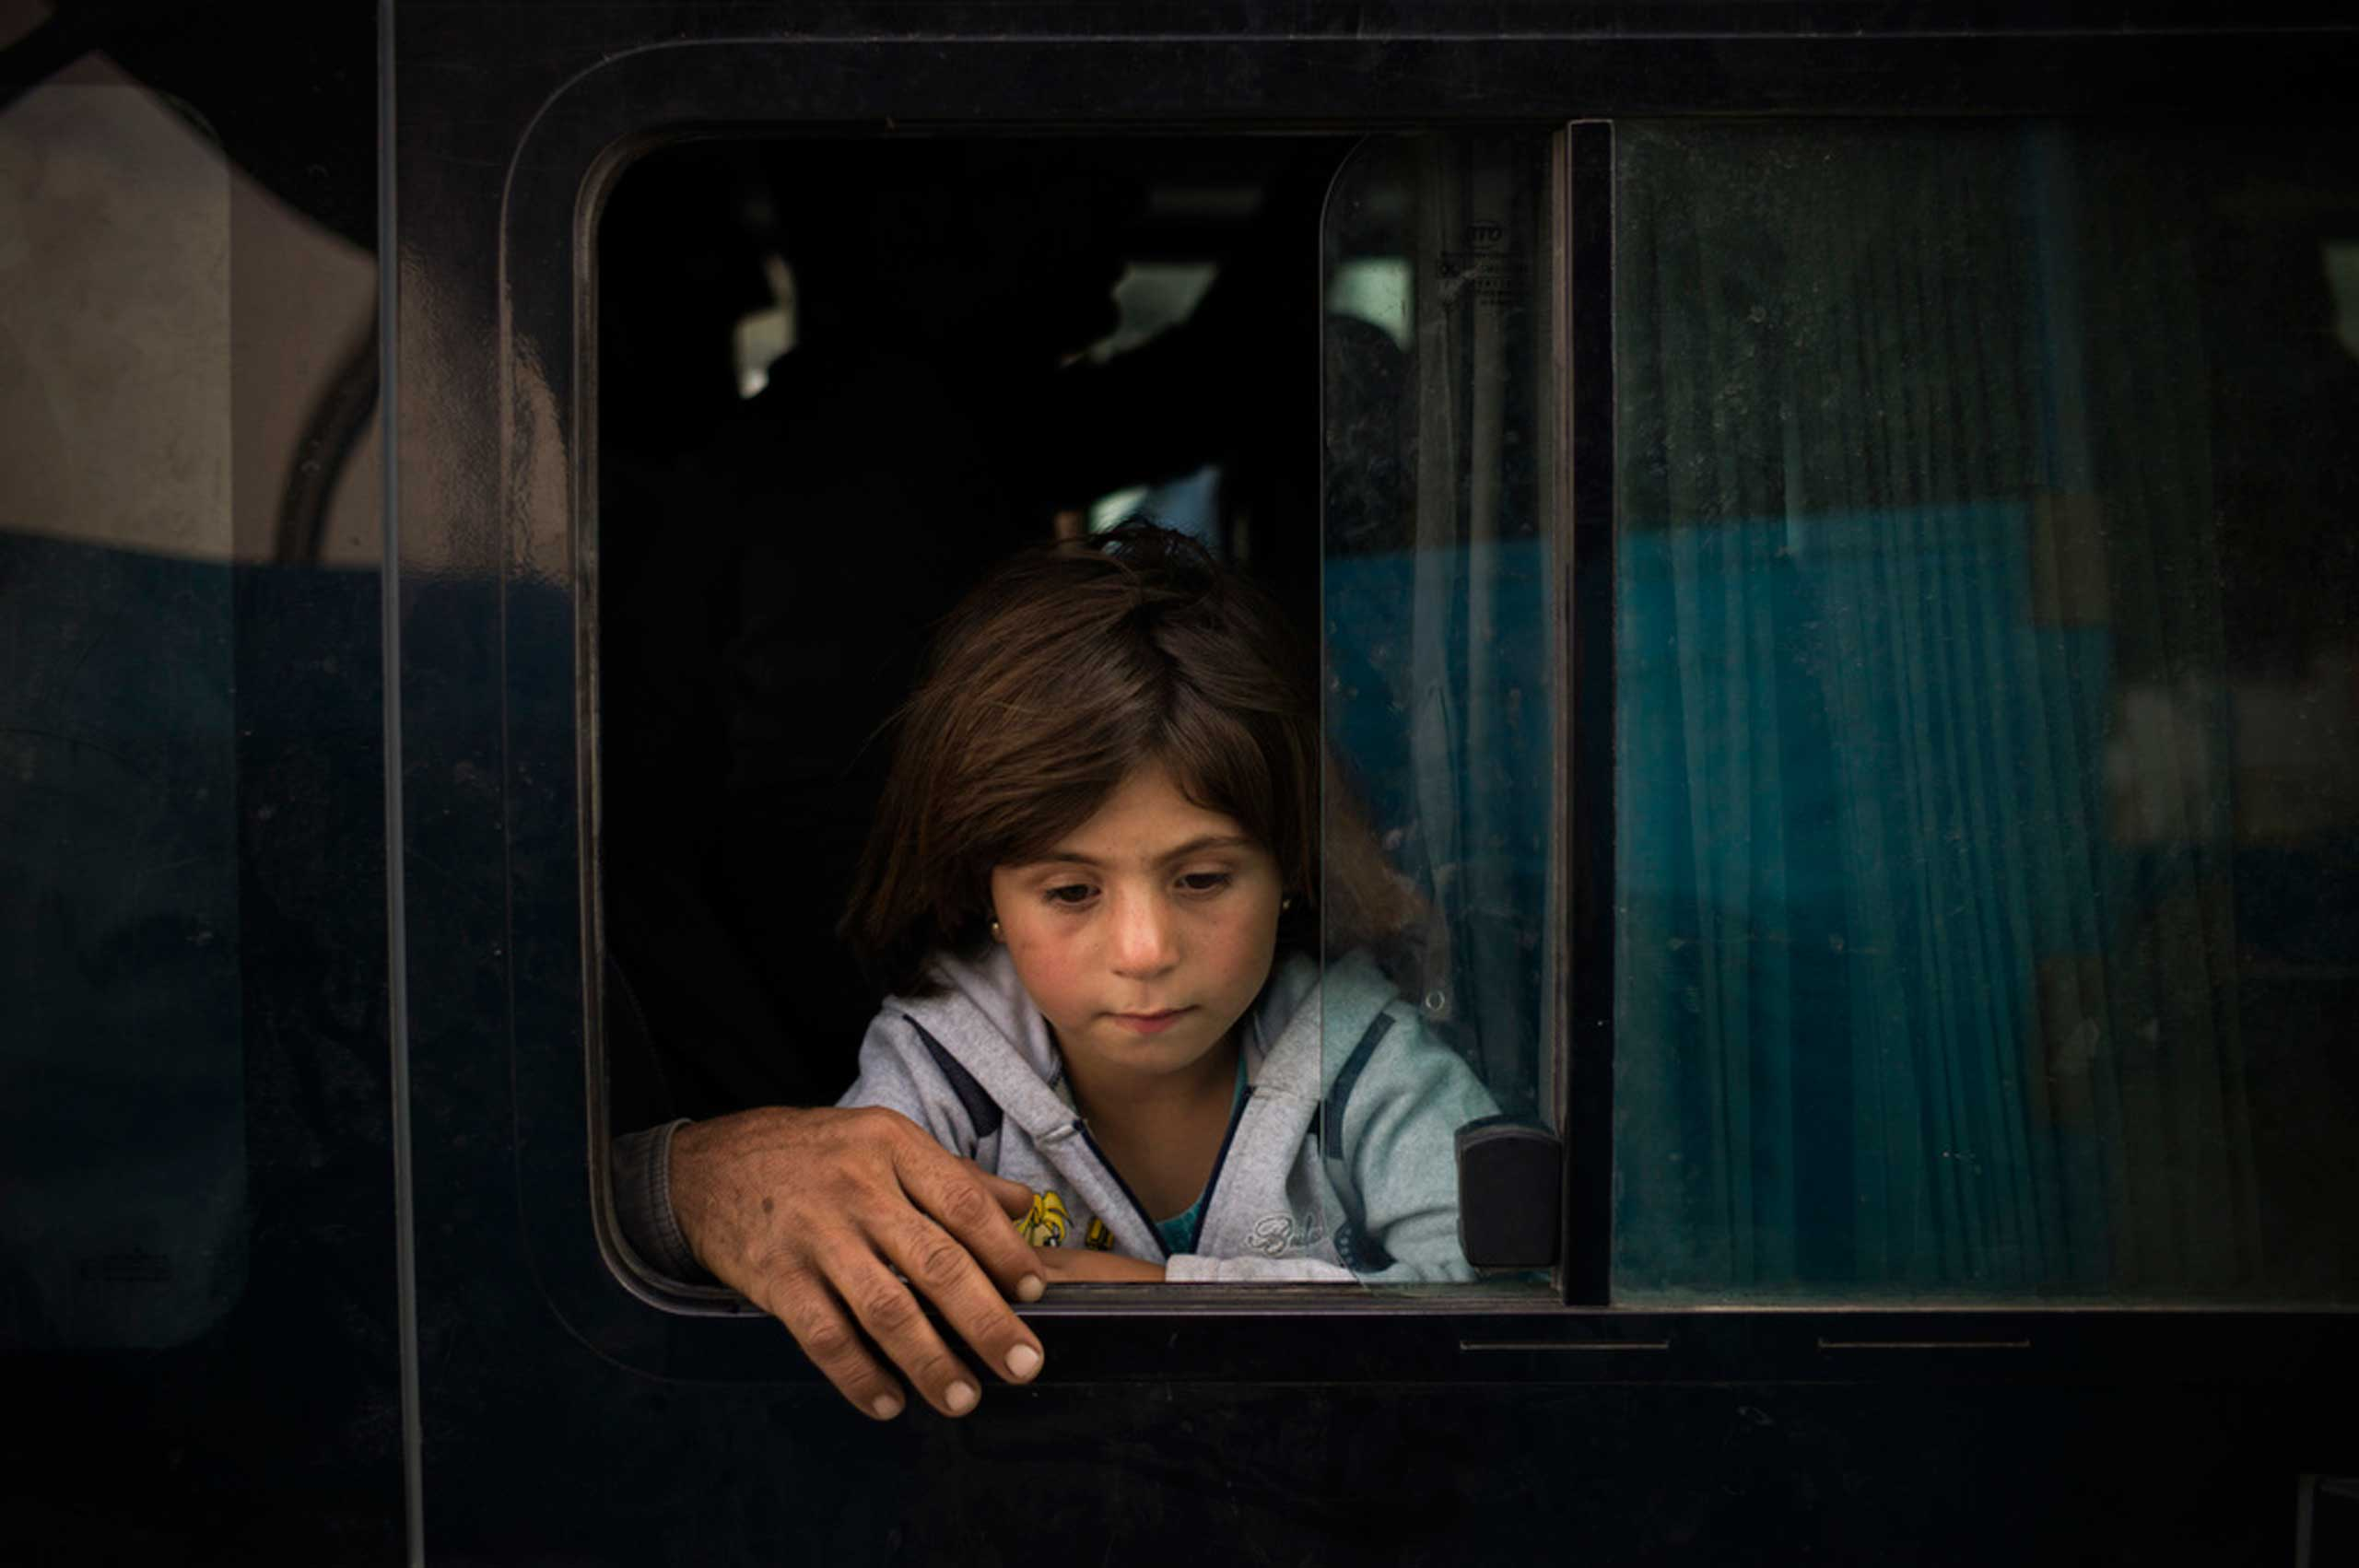 A young Syrian girl from Kobani is seen inside a bus arriving at a new transit point at the Ibrahim Khalil Border Crossing in Iraq after traveling by bus from Turkey. Oct. 2014